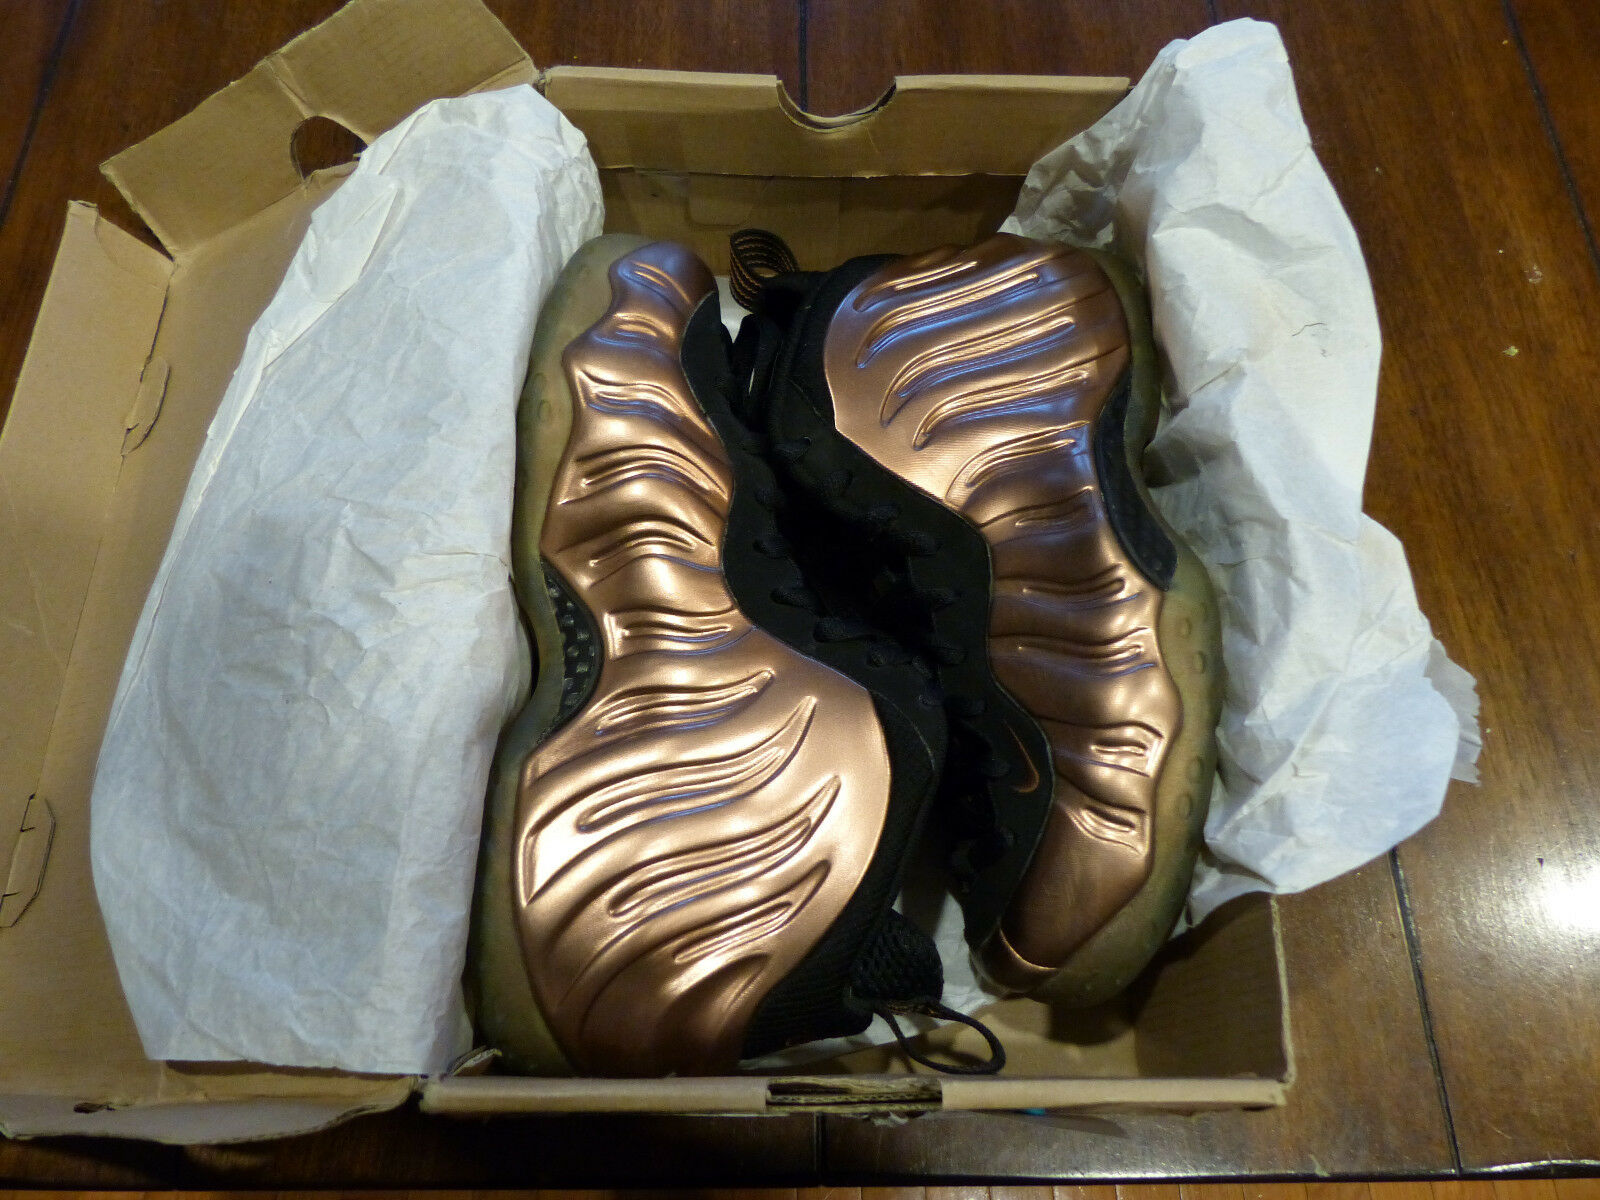 best loved cb229 1258e Nike air foamposite one 2010 2010 2010 og release kupfer mens 6 selten  bfbe93